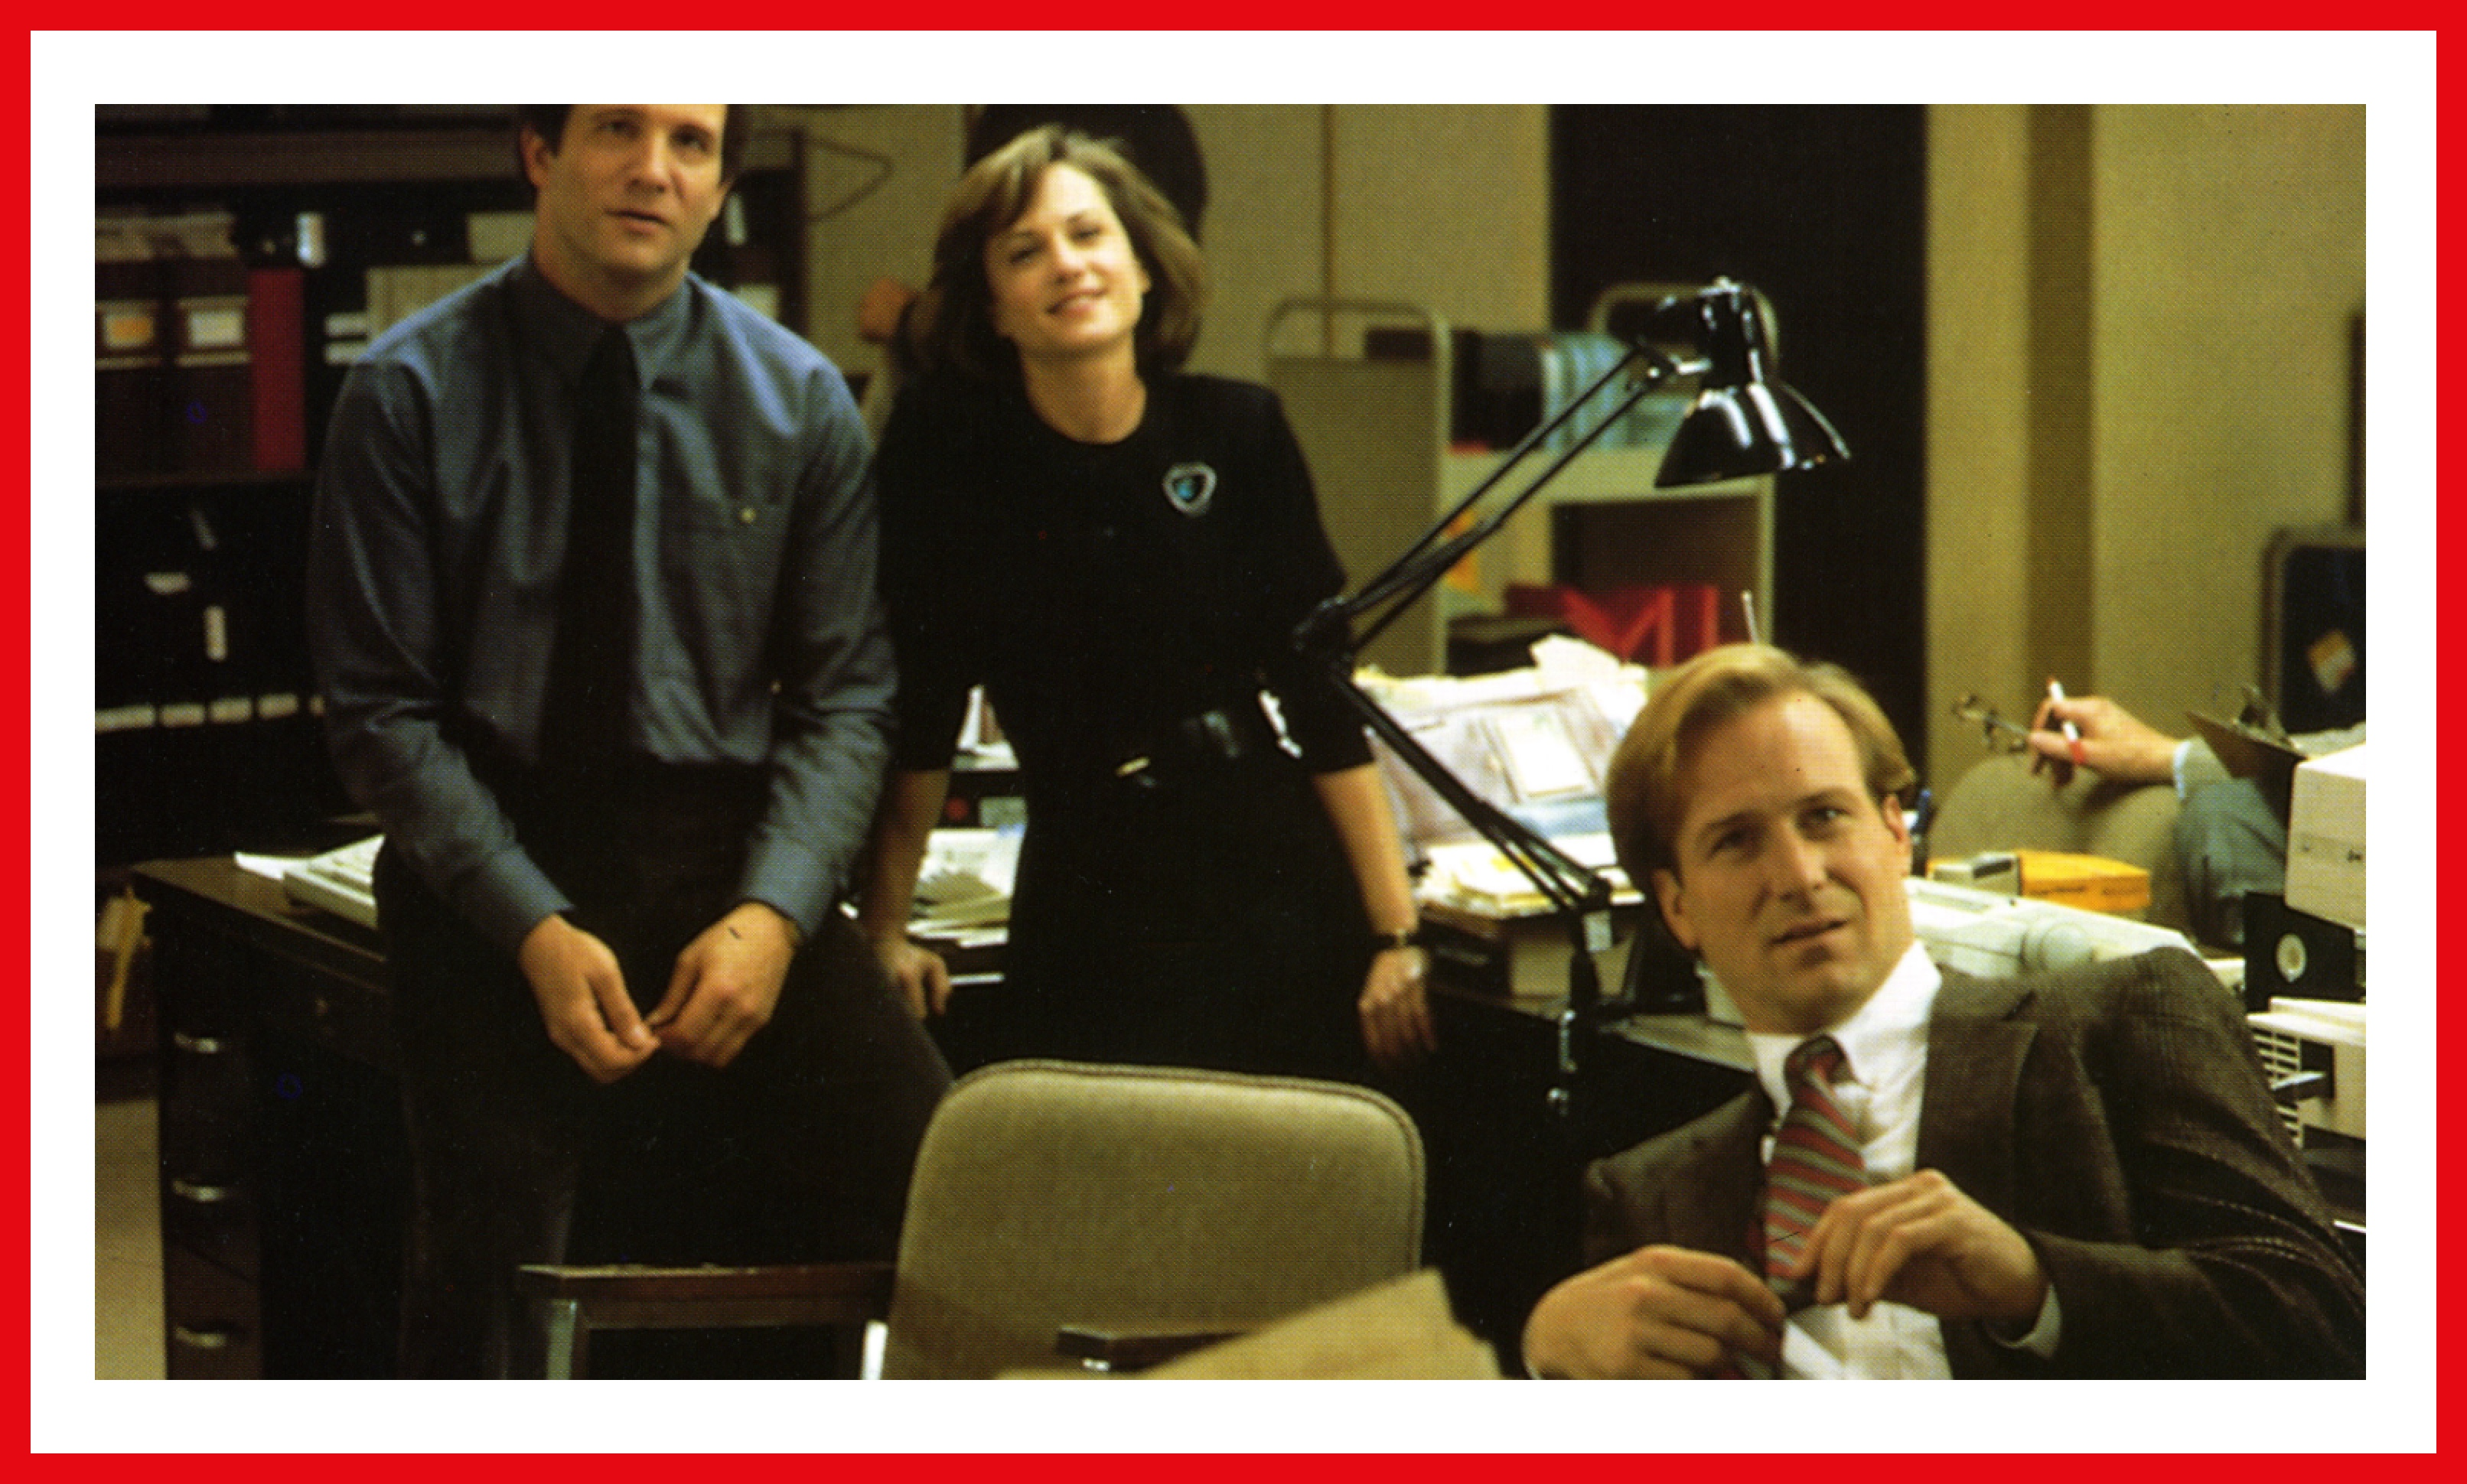 Brooks, Hunter, and Hurt in a scene from the film. They are pictured in a messy newsroom office.